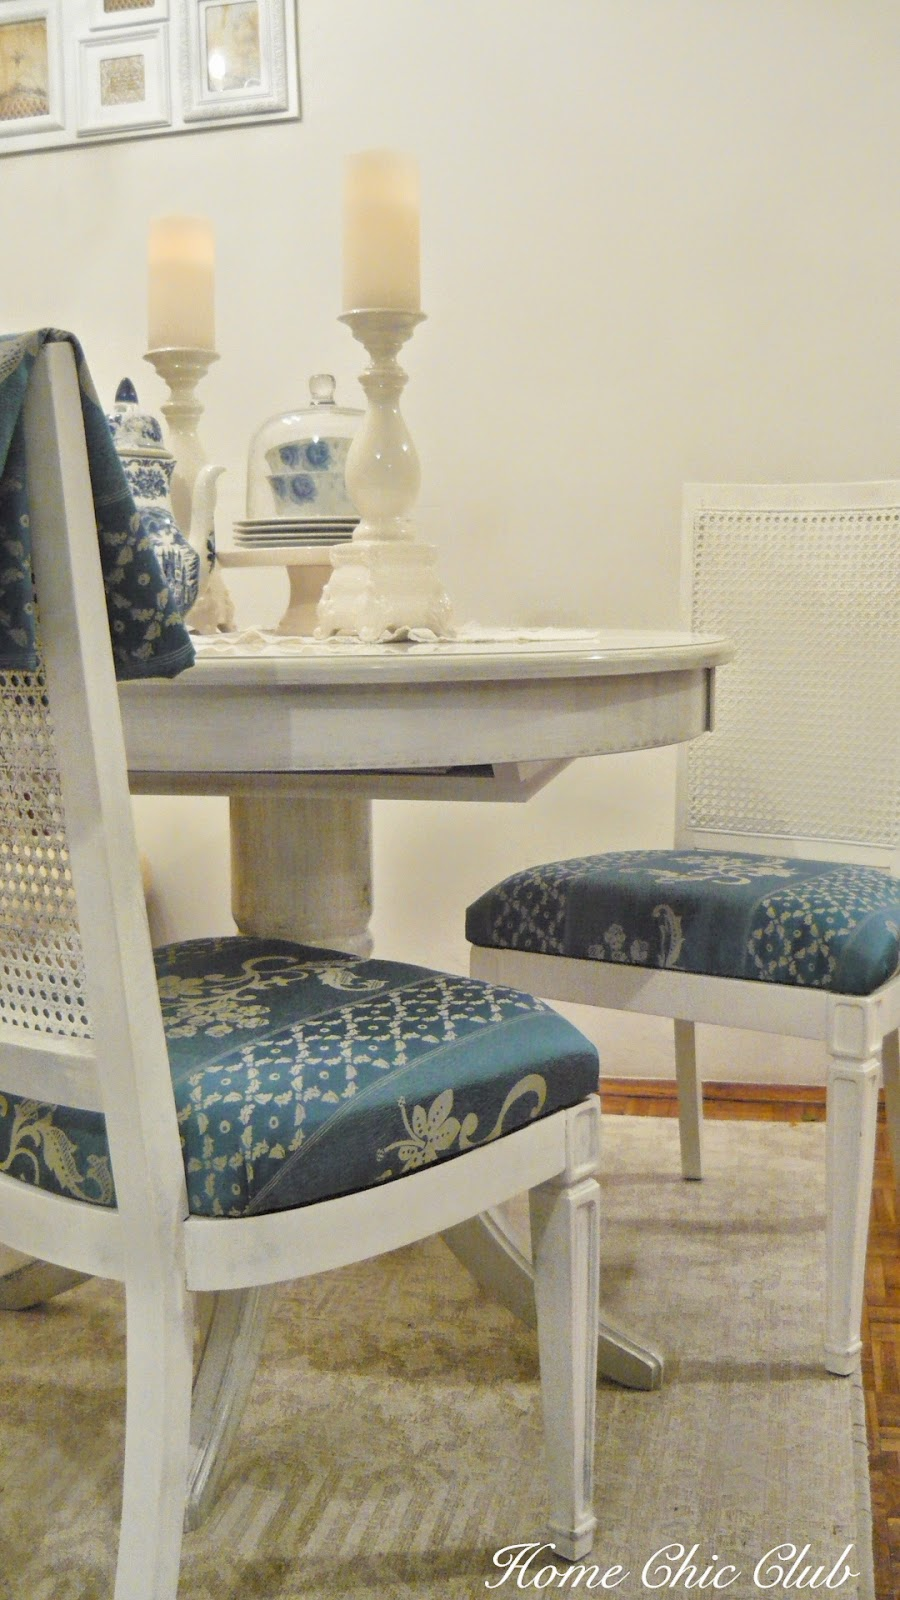 Reupholstering a dining room